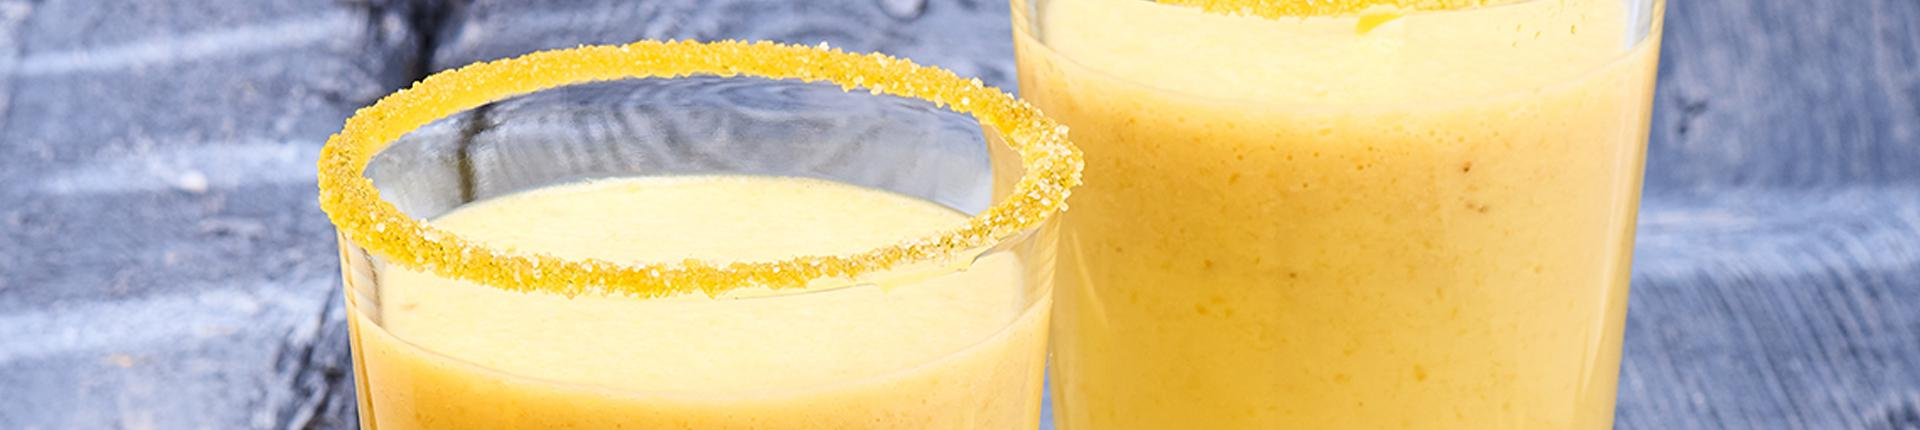 Pineapple-banana-lime smoothie